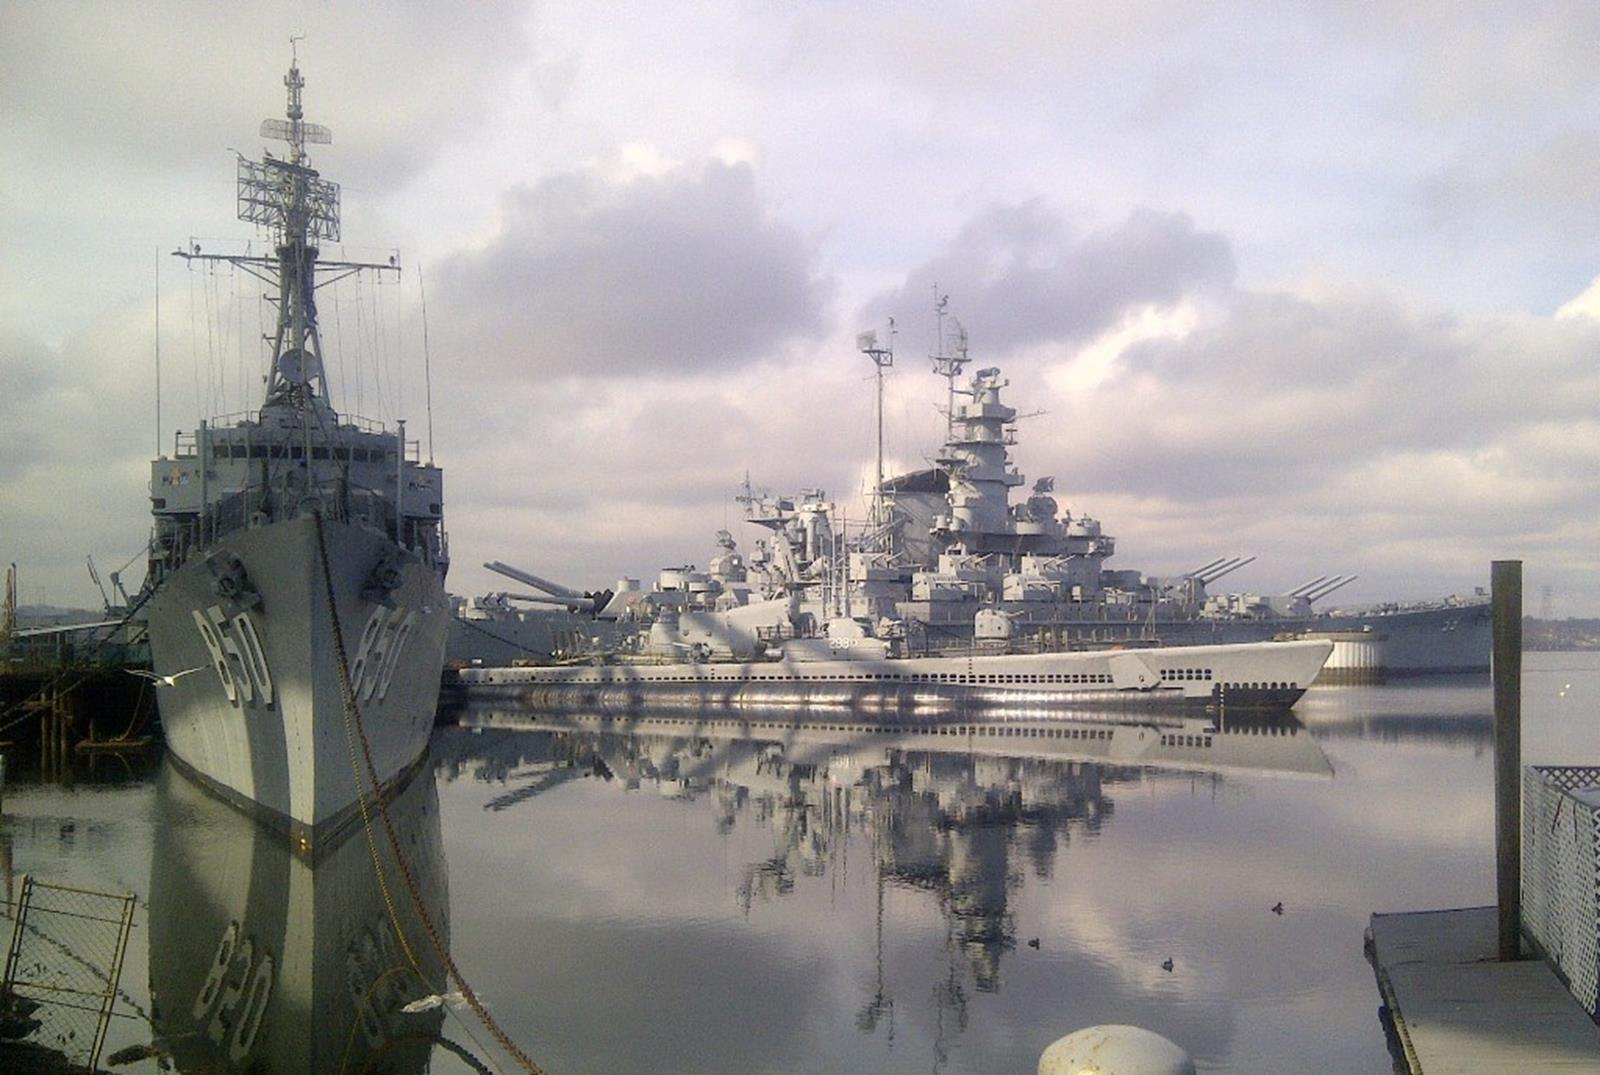 Ships from shore at Battleship Cove.